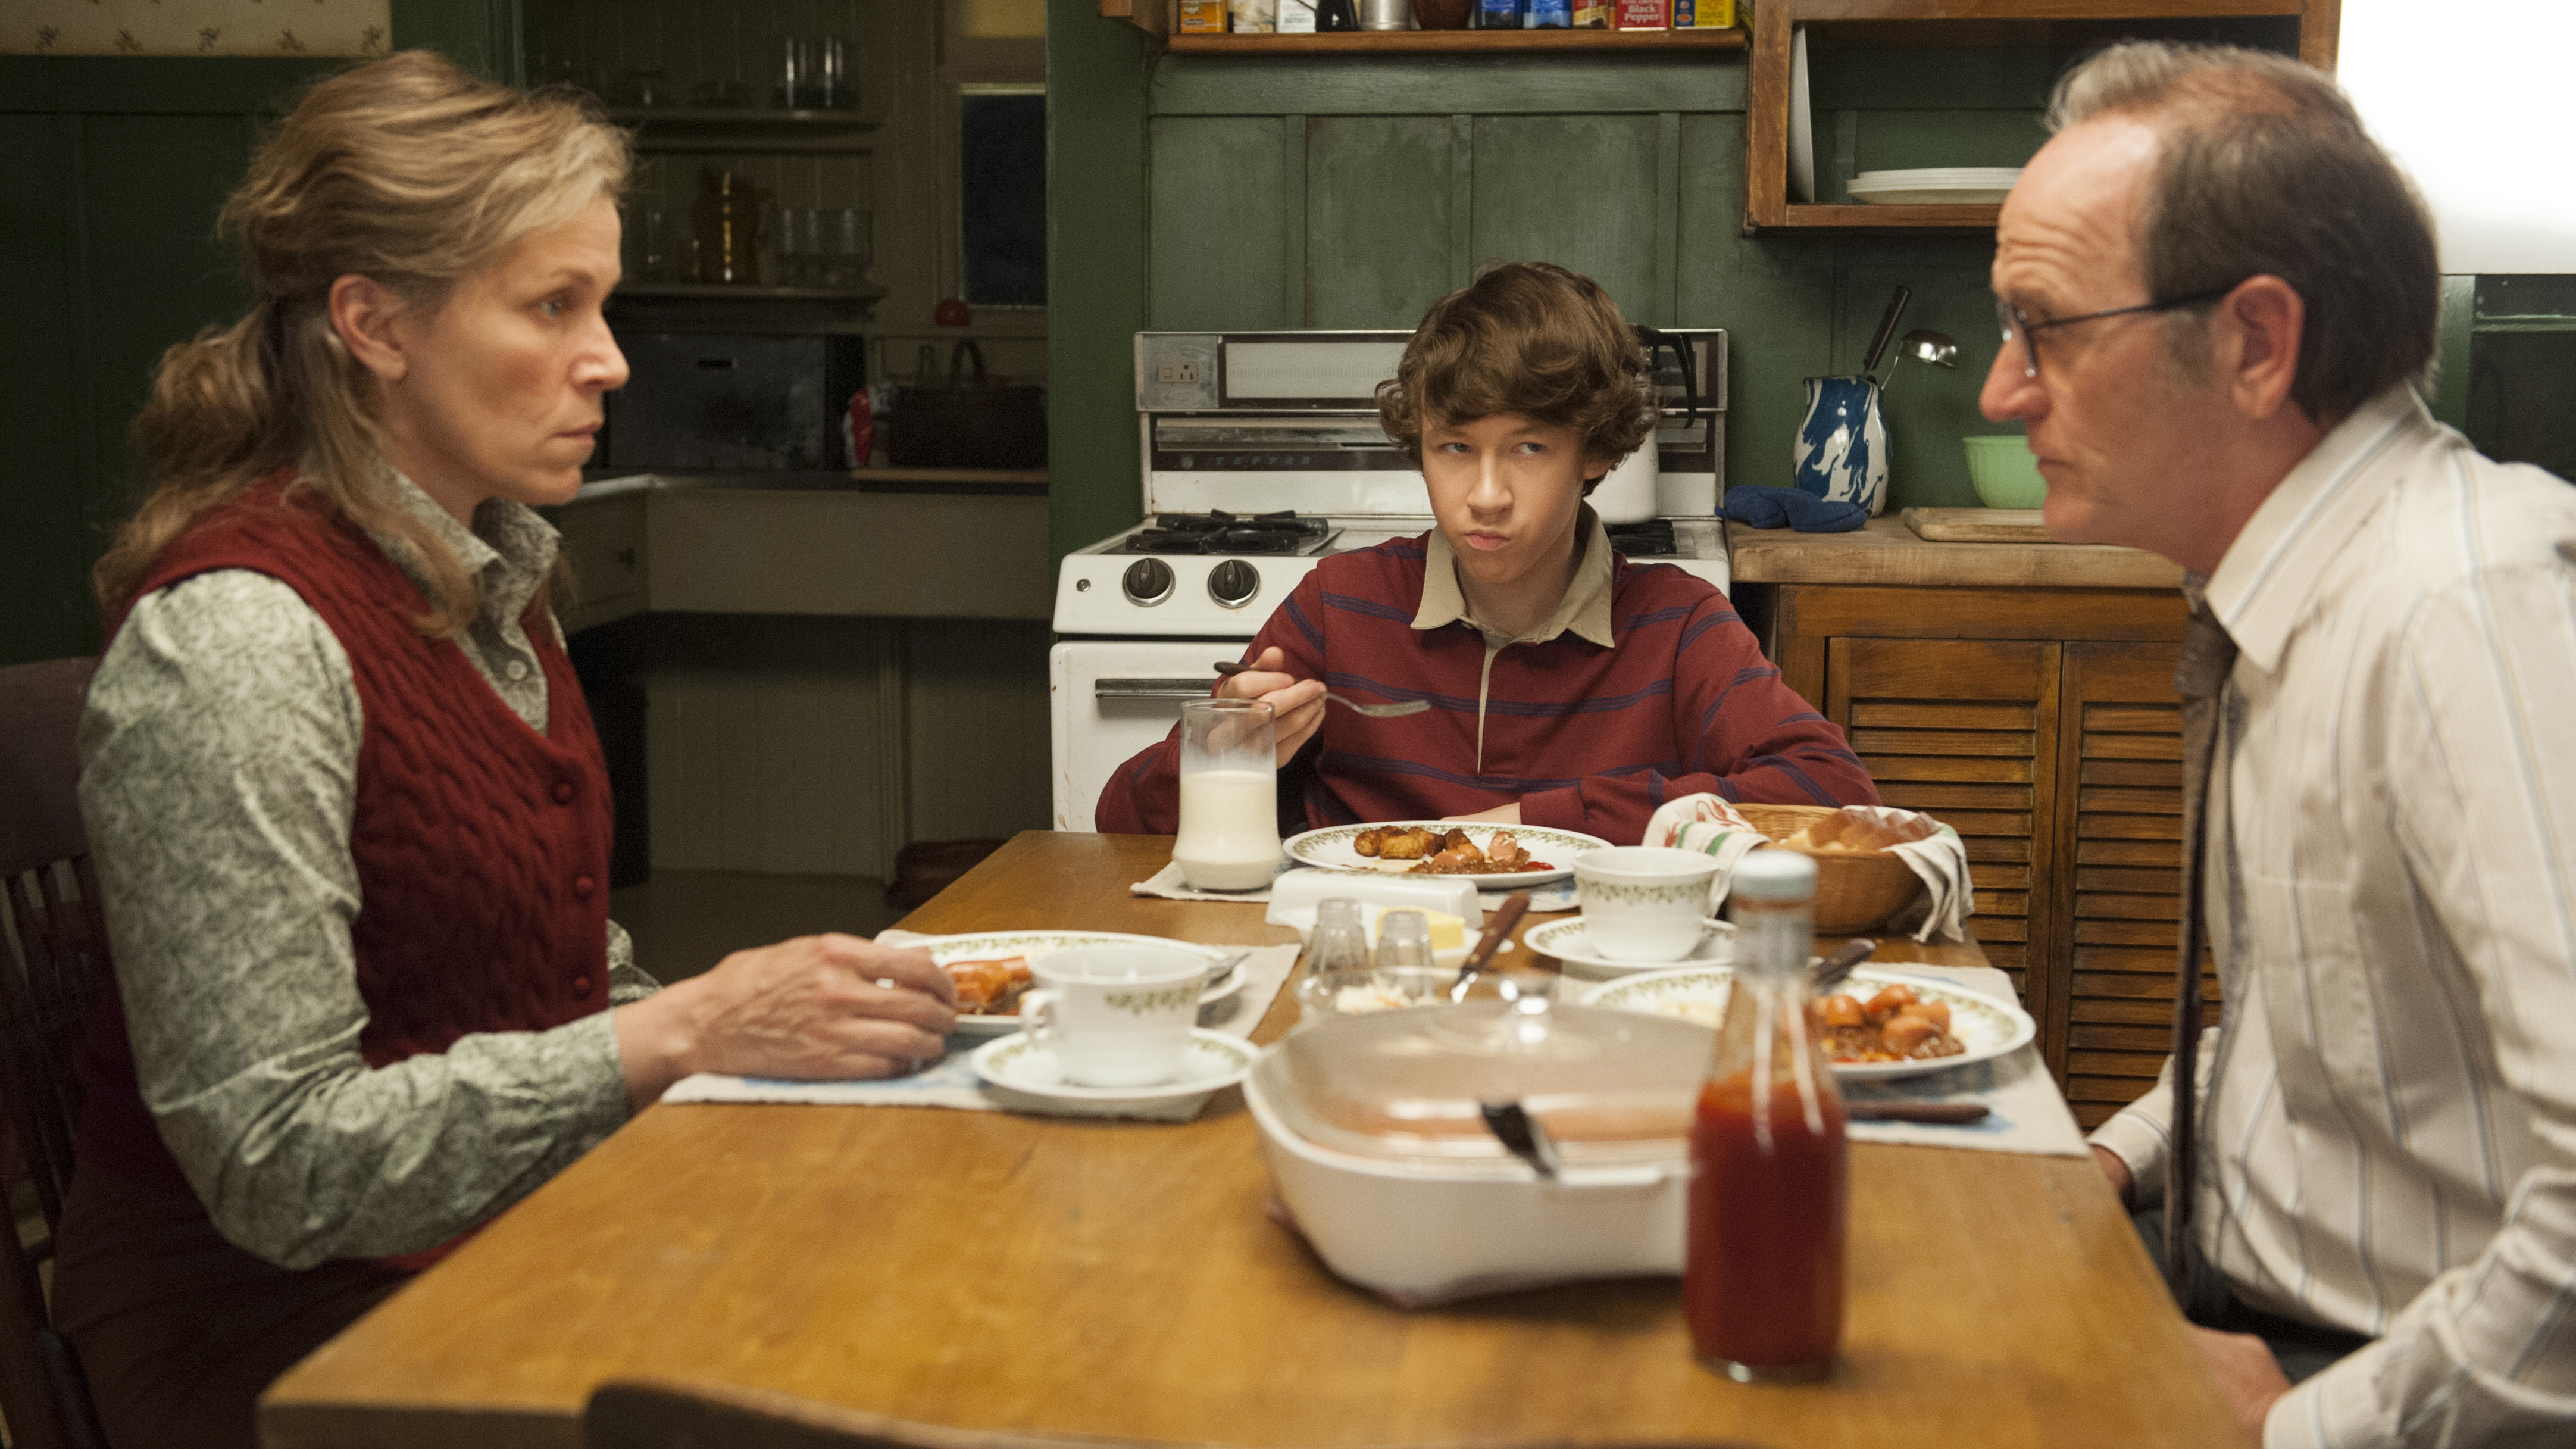 HBO's 'Olive Kitteridge' May Be The Best Depiction Of Marriage On TV